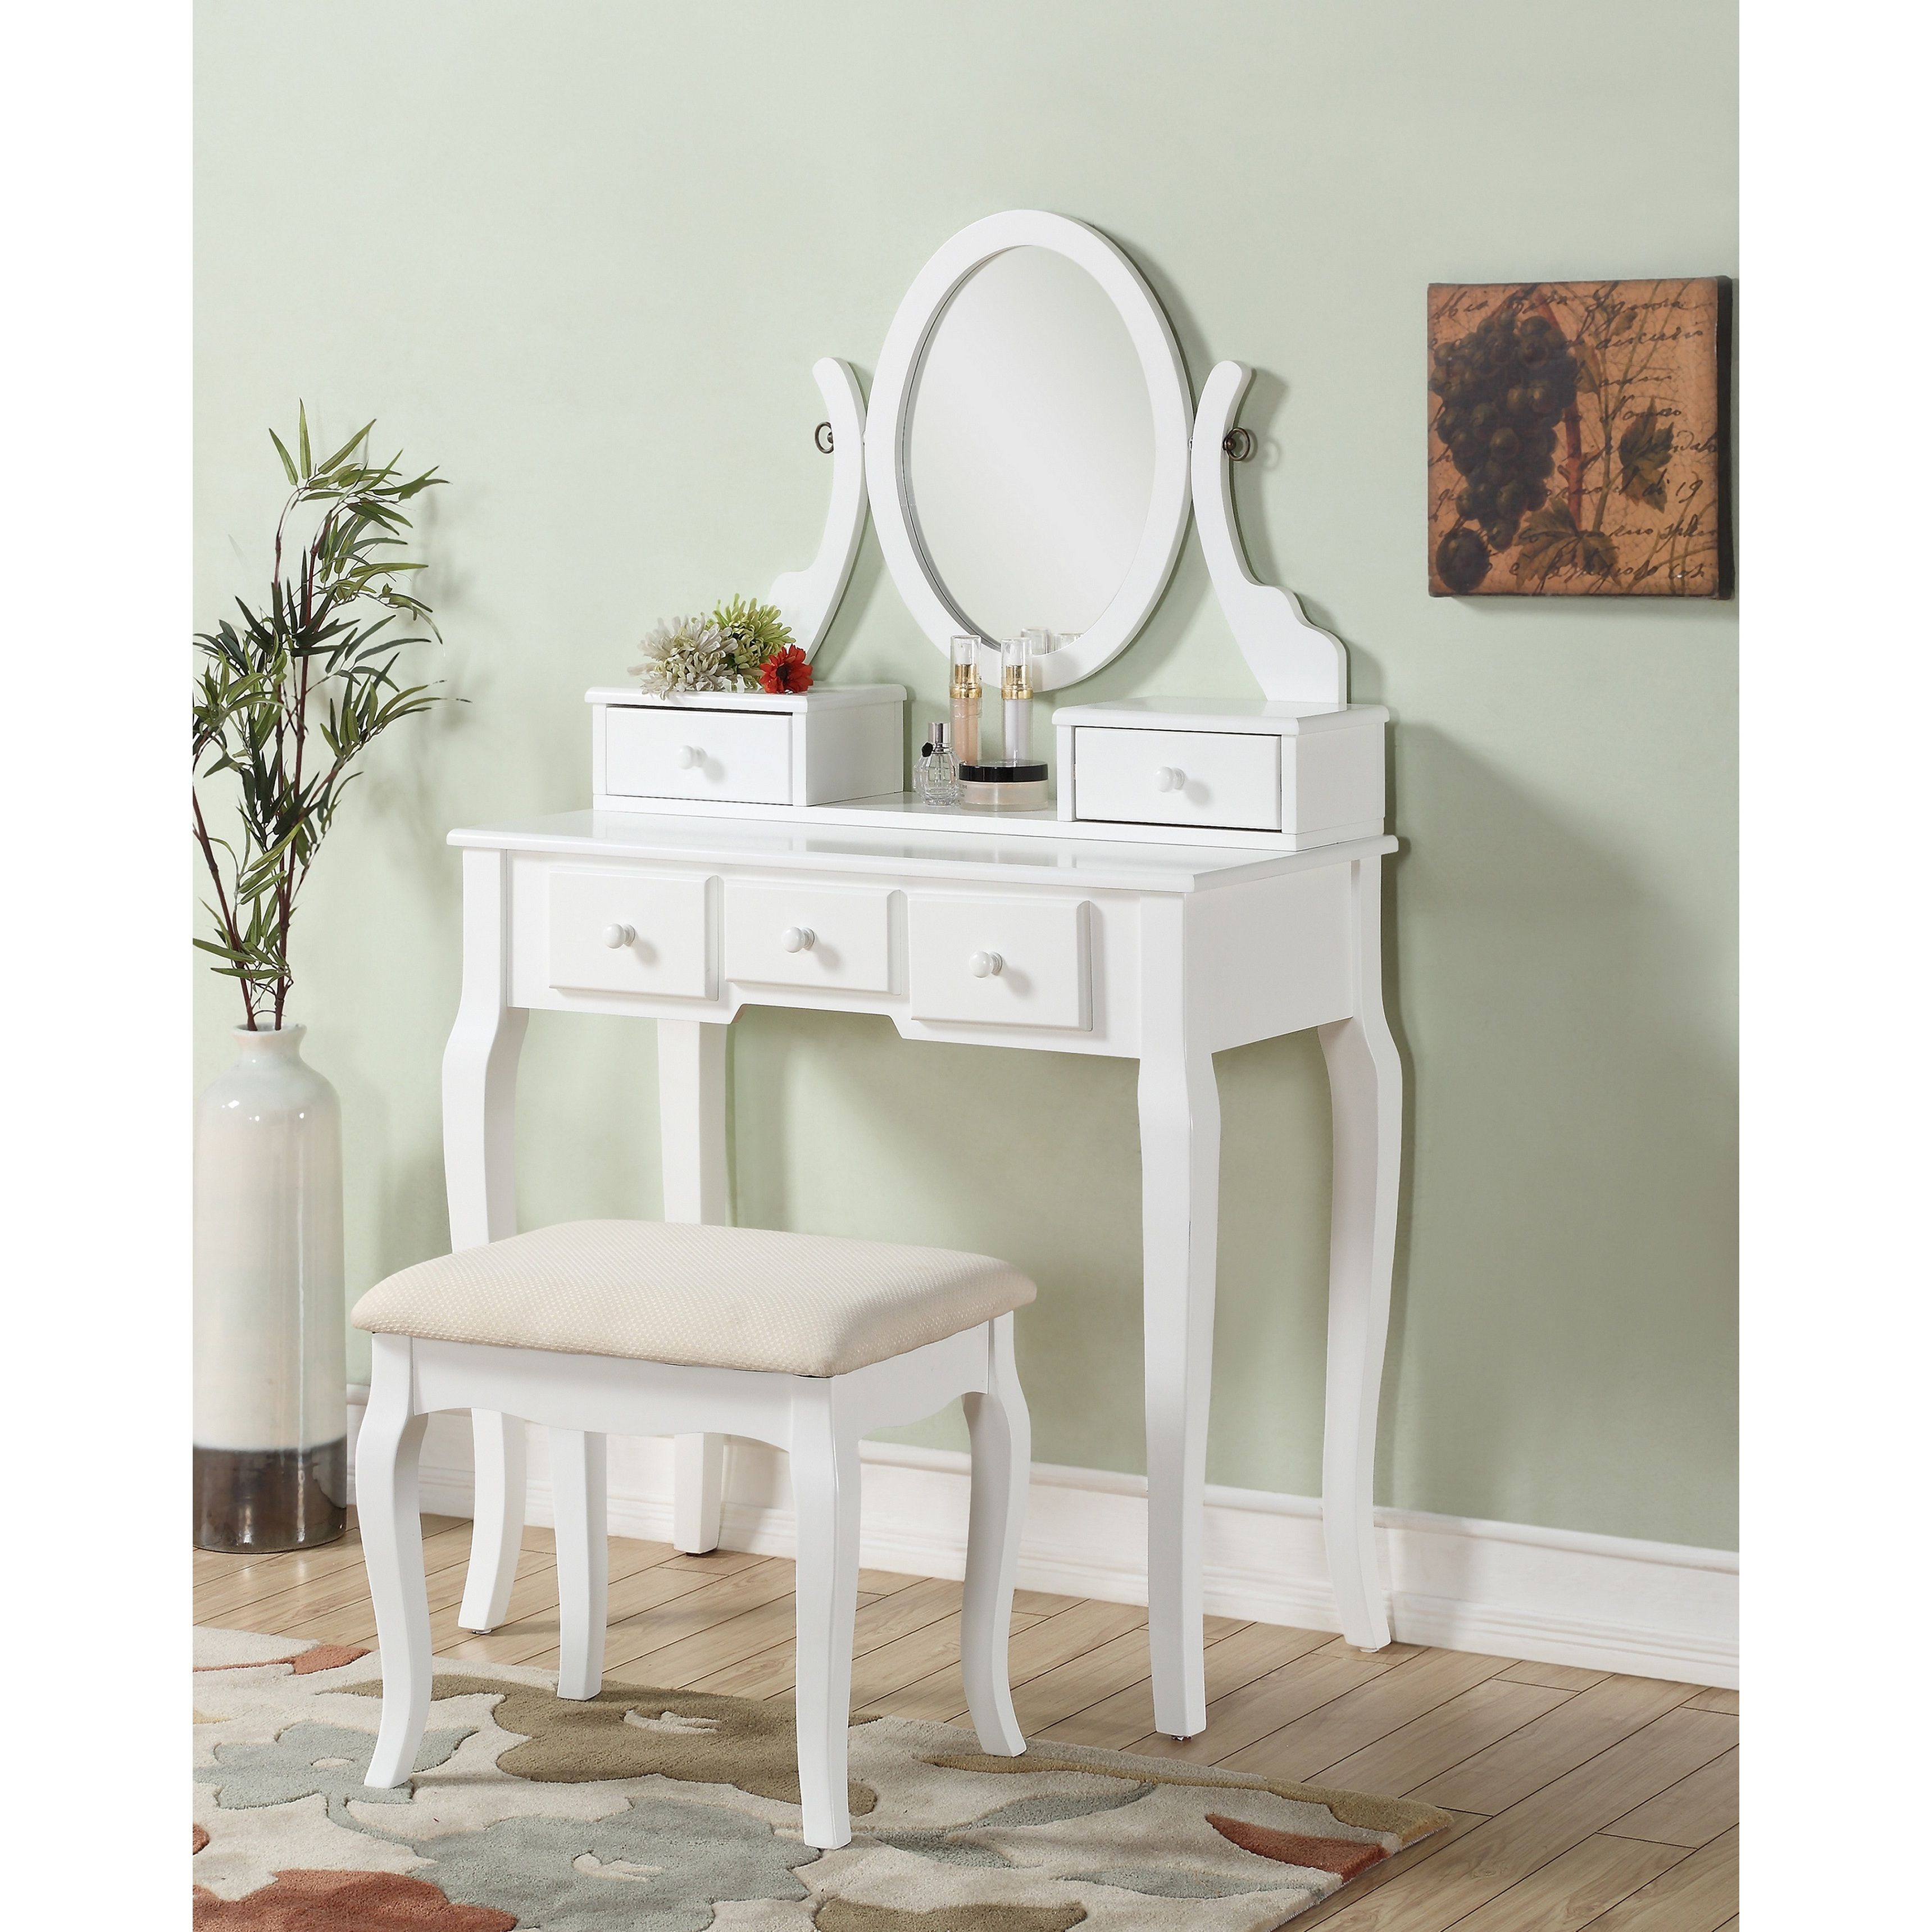 Maison Rouge Alice Wood Makeup Vanity Table And Stool Set Wood Makeup Vanity Makeup Table